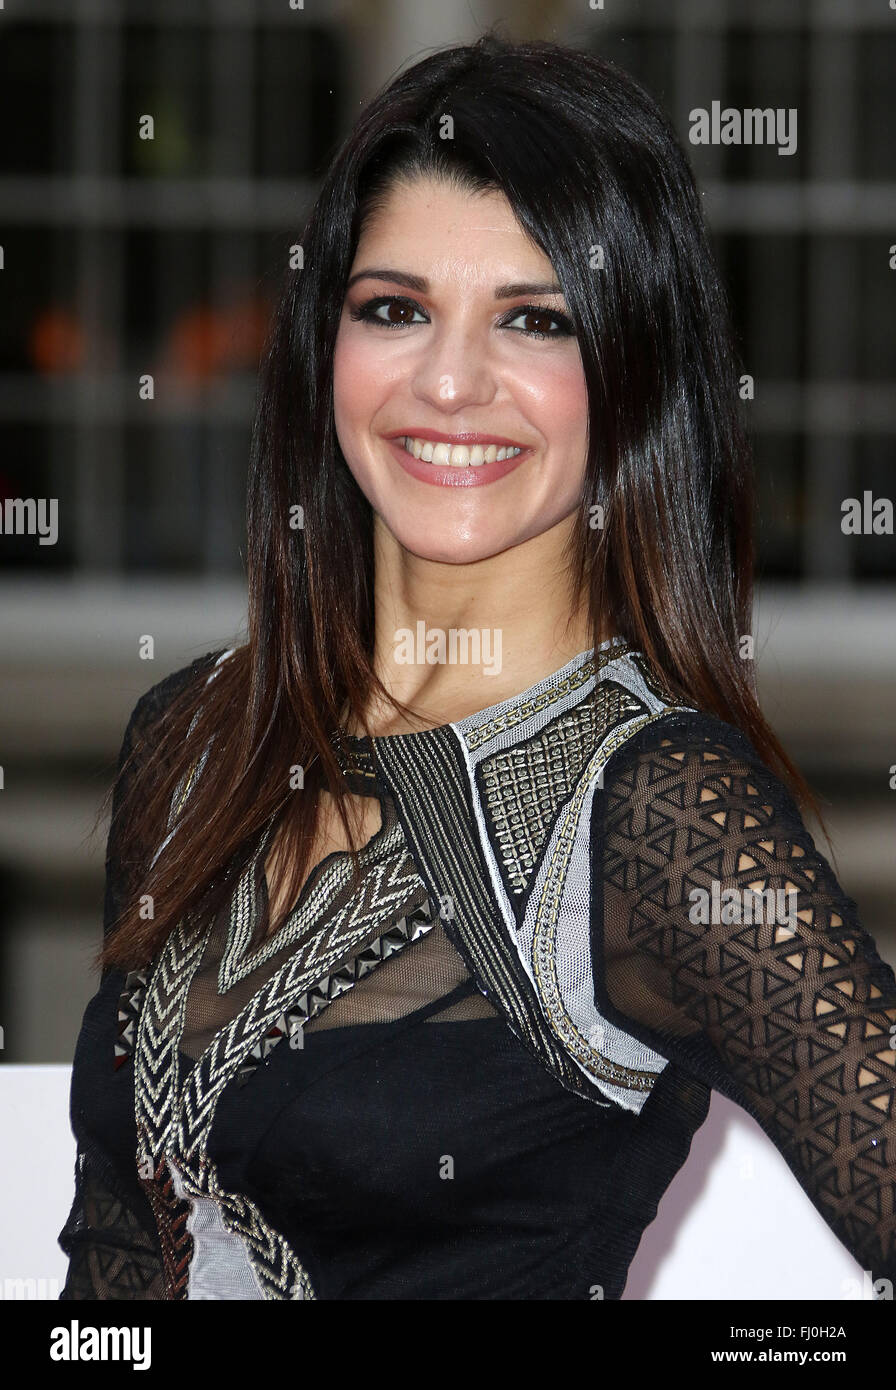 Jan 22, 2016 - London, England, UK - Natalie Anderson arriving at The Sun Military Awards, Guildhall - Red Carpet Stock Photo